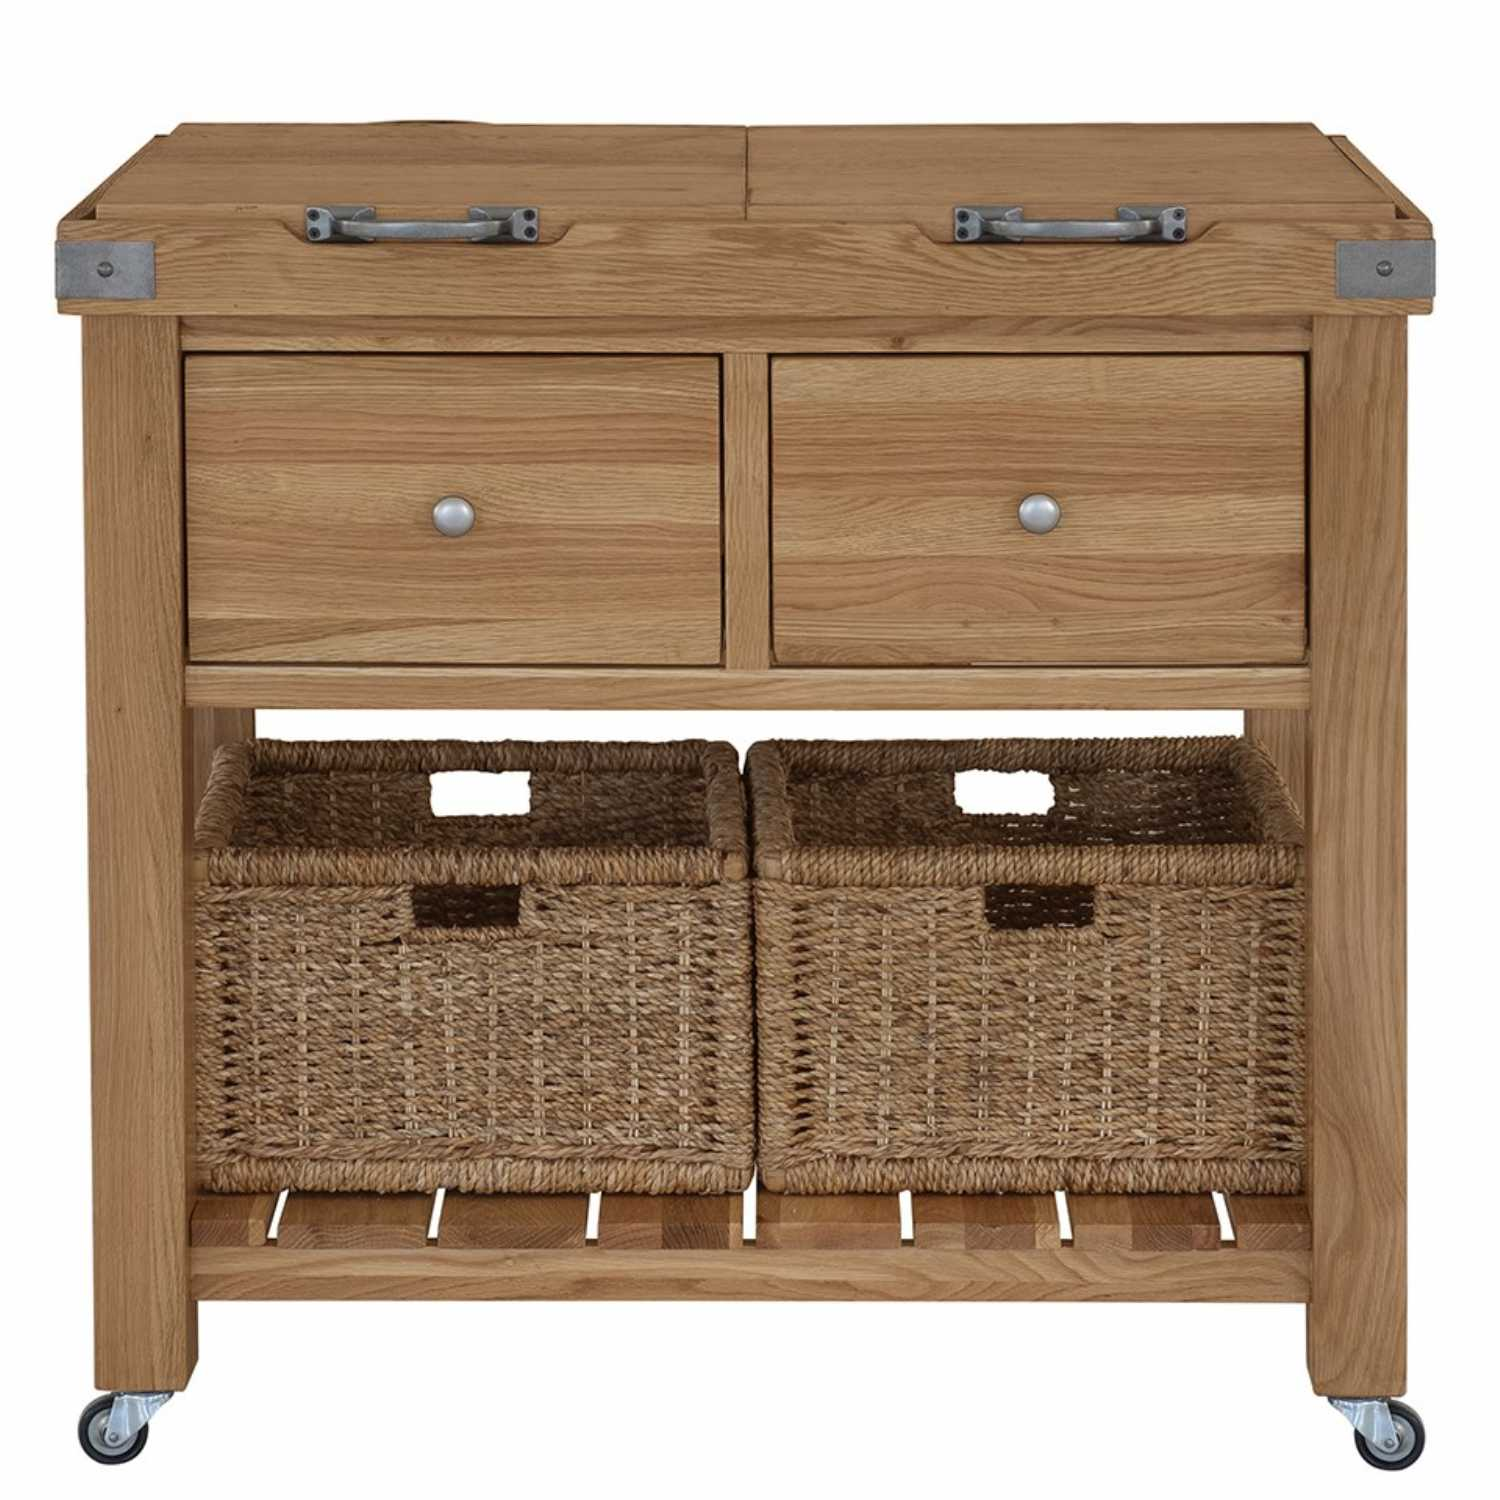 Traditional Style Handmade Oak Wood 2 Drawer Kitchen Double Butchers Block With Castor Wheels 600 x 908cm